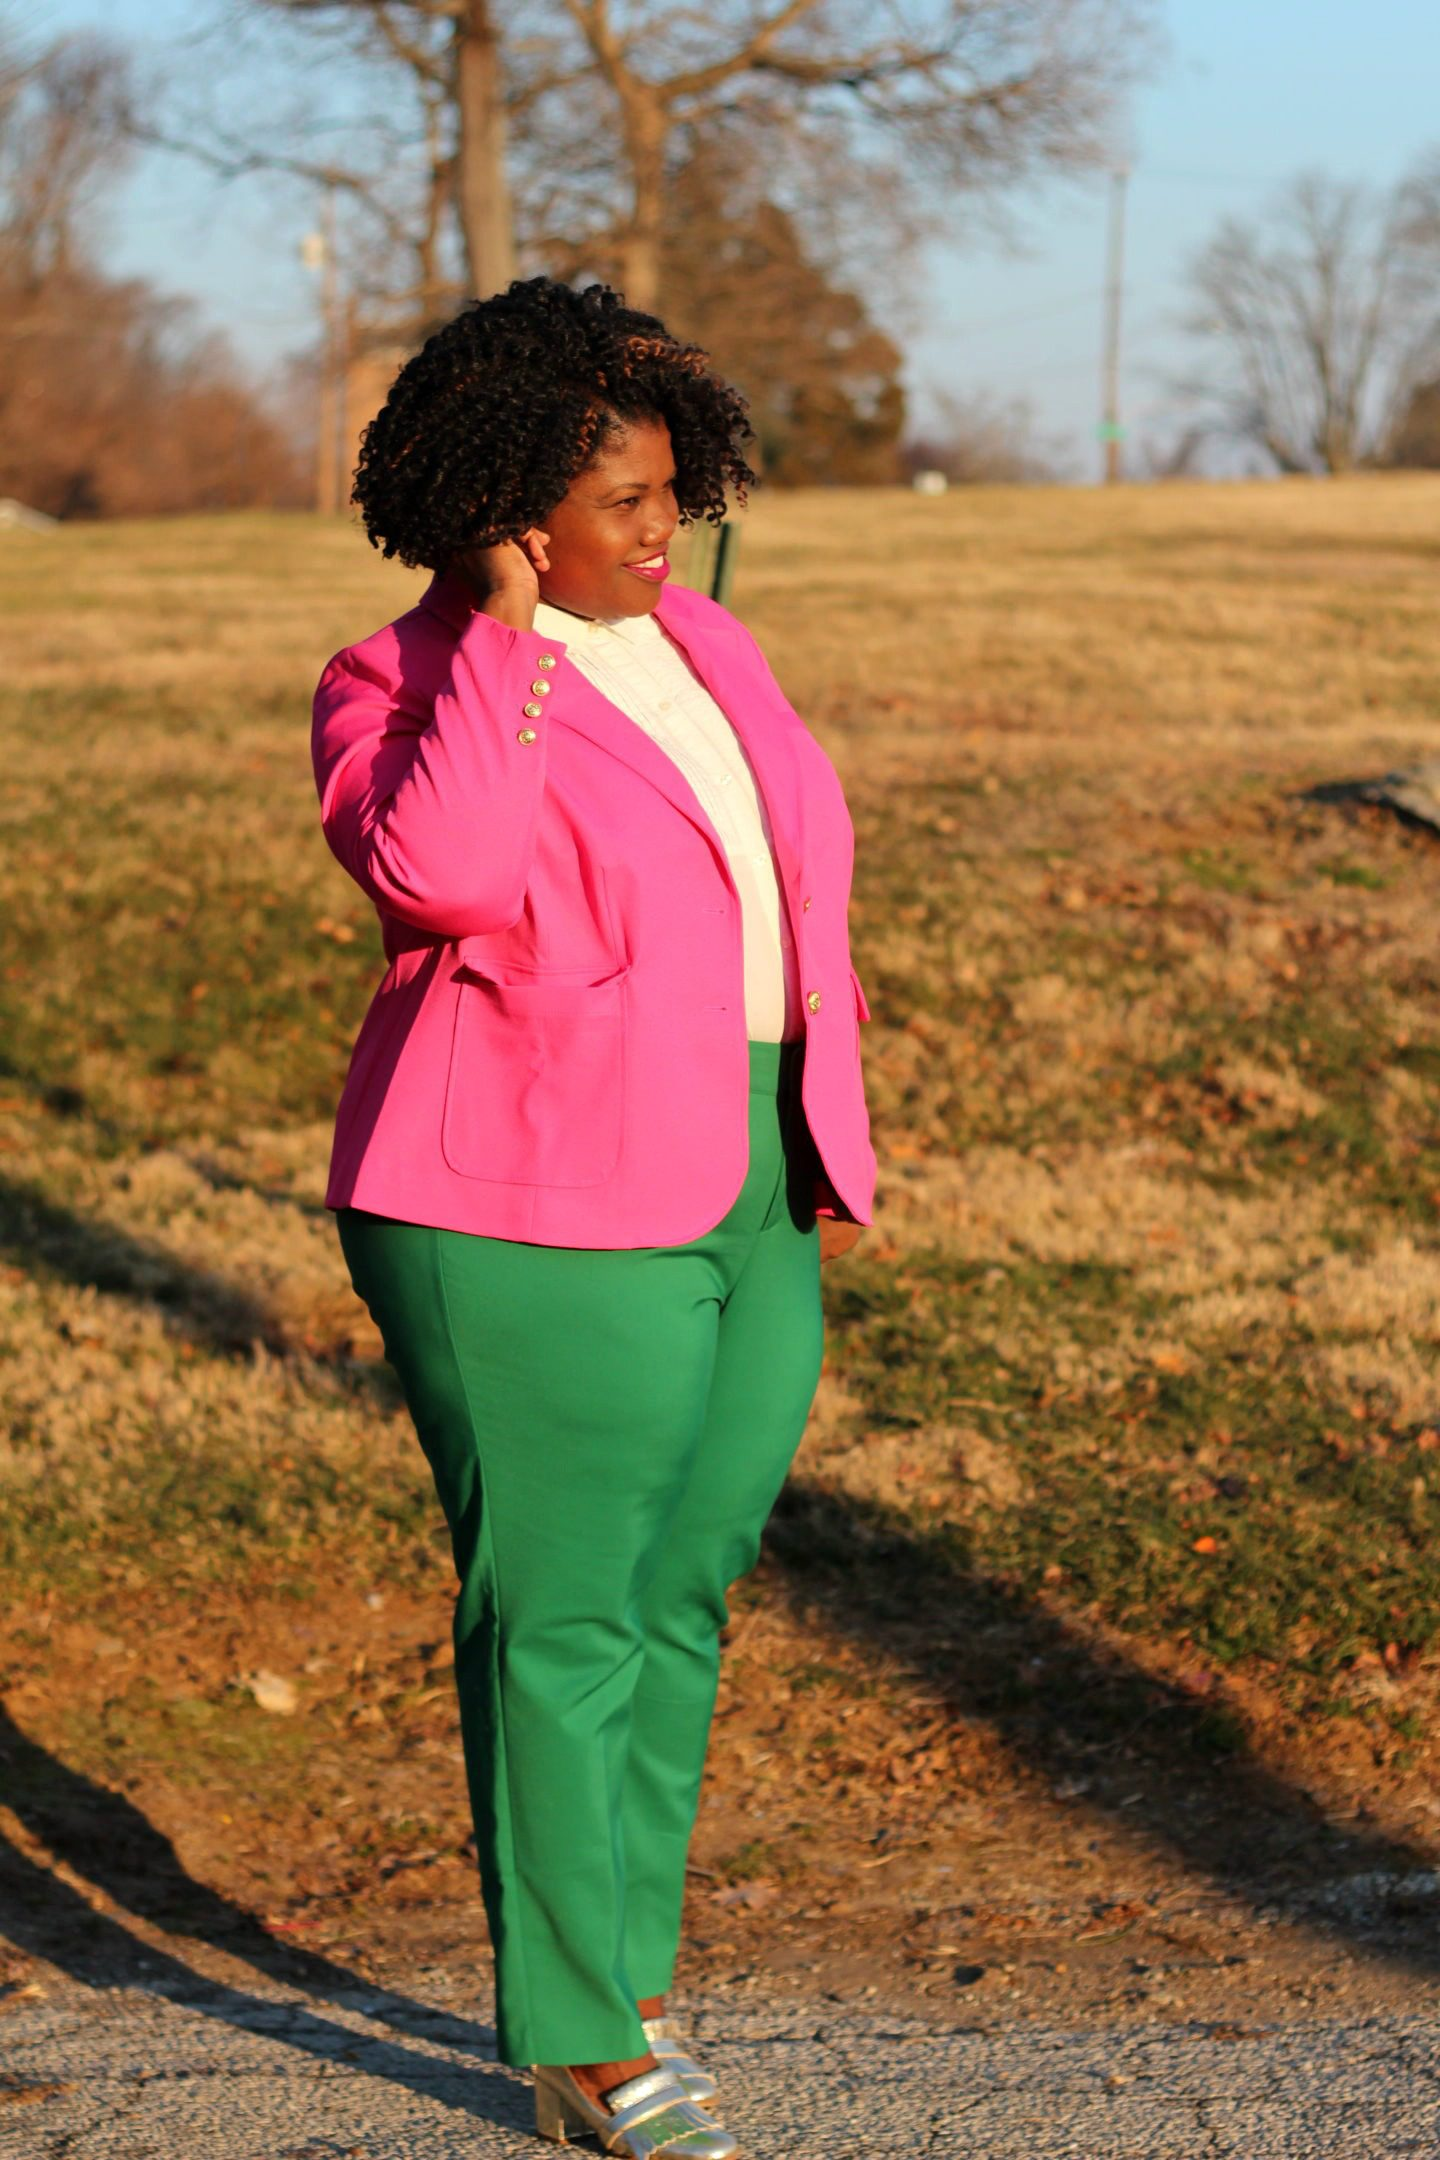 plus size fashion, plus size pants, green pants, kady pants, eloquii pants, eloquii kady pants, blazer, plus size blazer, eloquii, button up shirt, gold loafers, steve madden loafers, block heel shoes, plus size blog, plus size bloggers, curvy, curvy women, curvy girls, curvy blogs, curvy bloggers, spring, winter